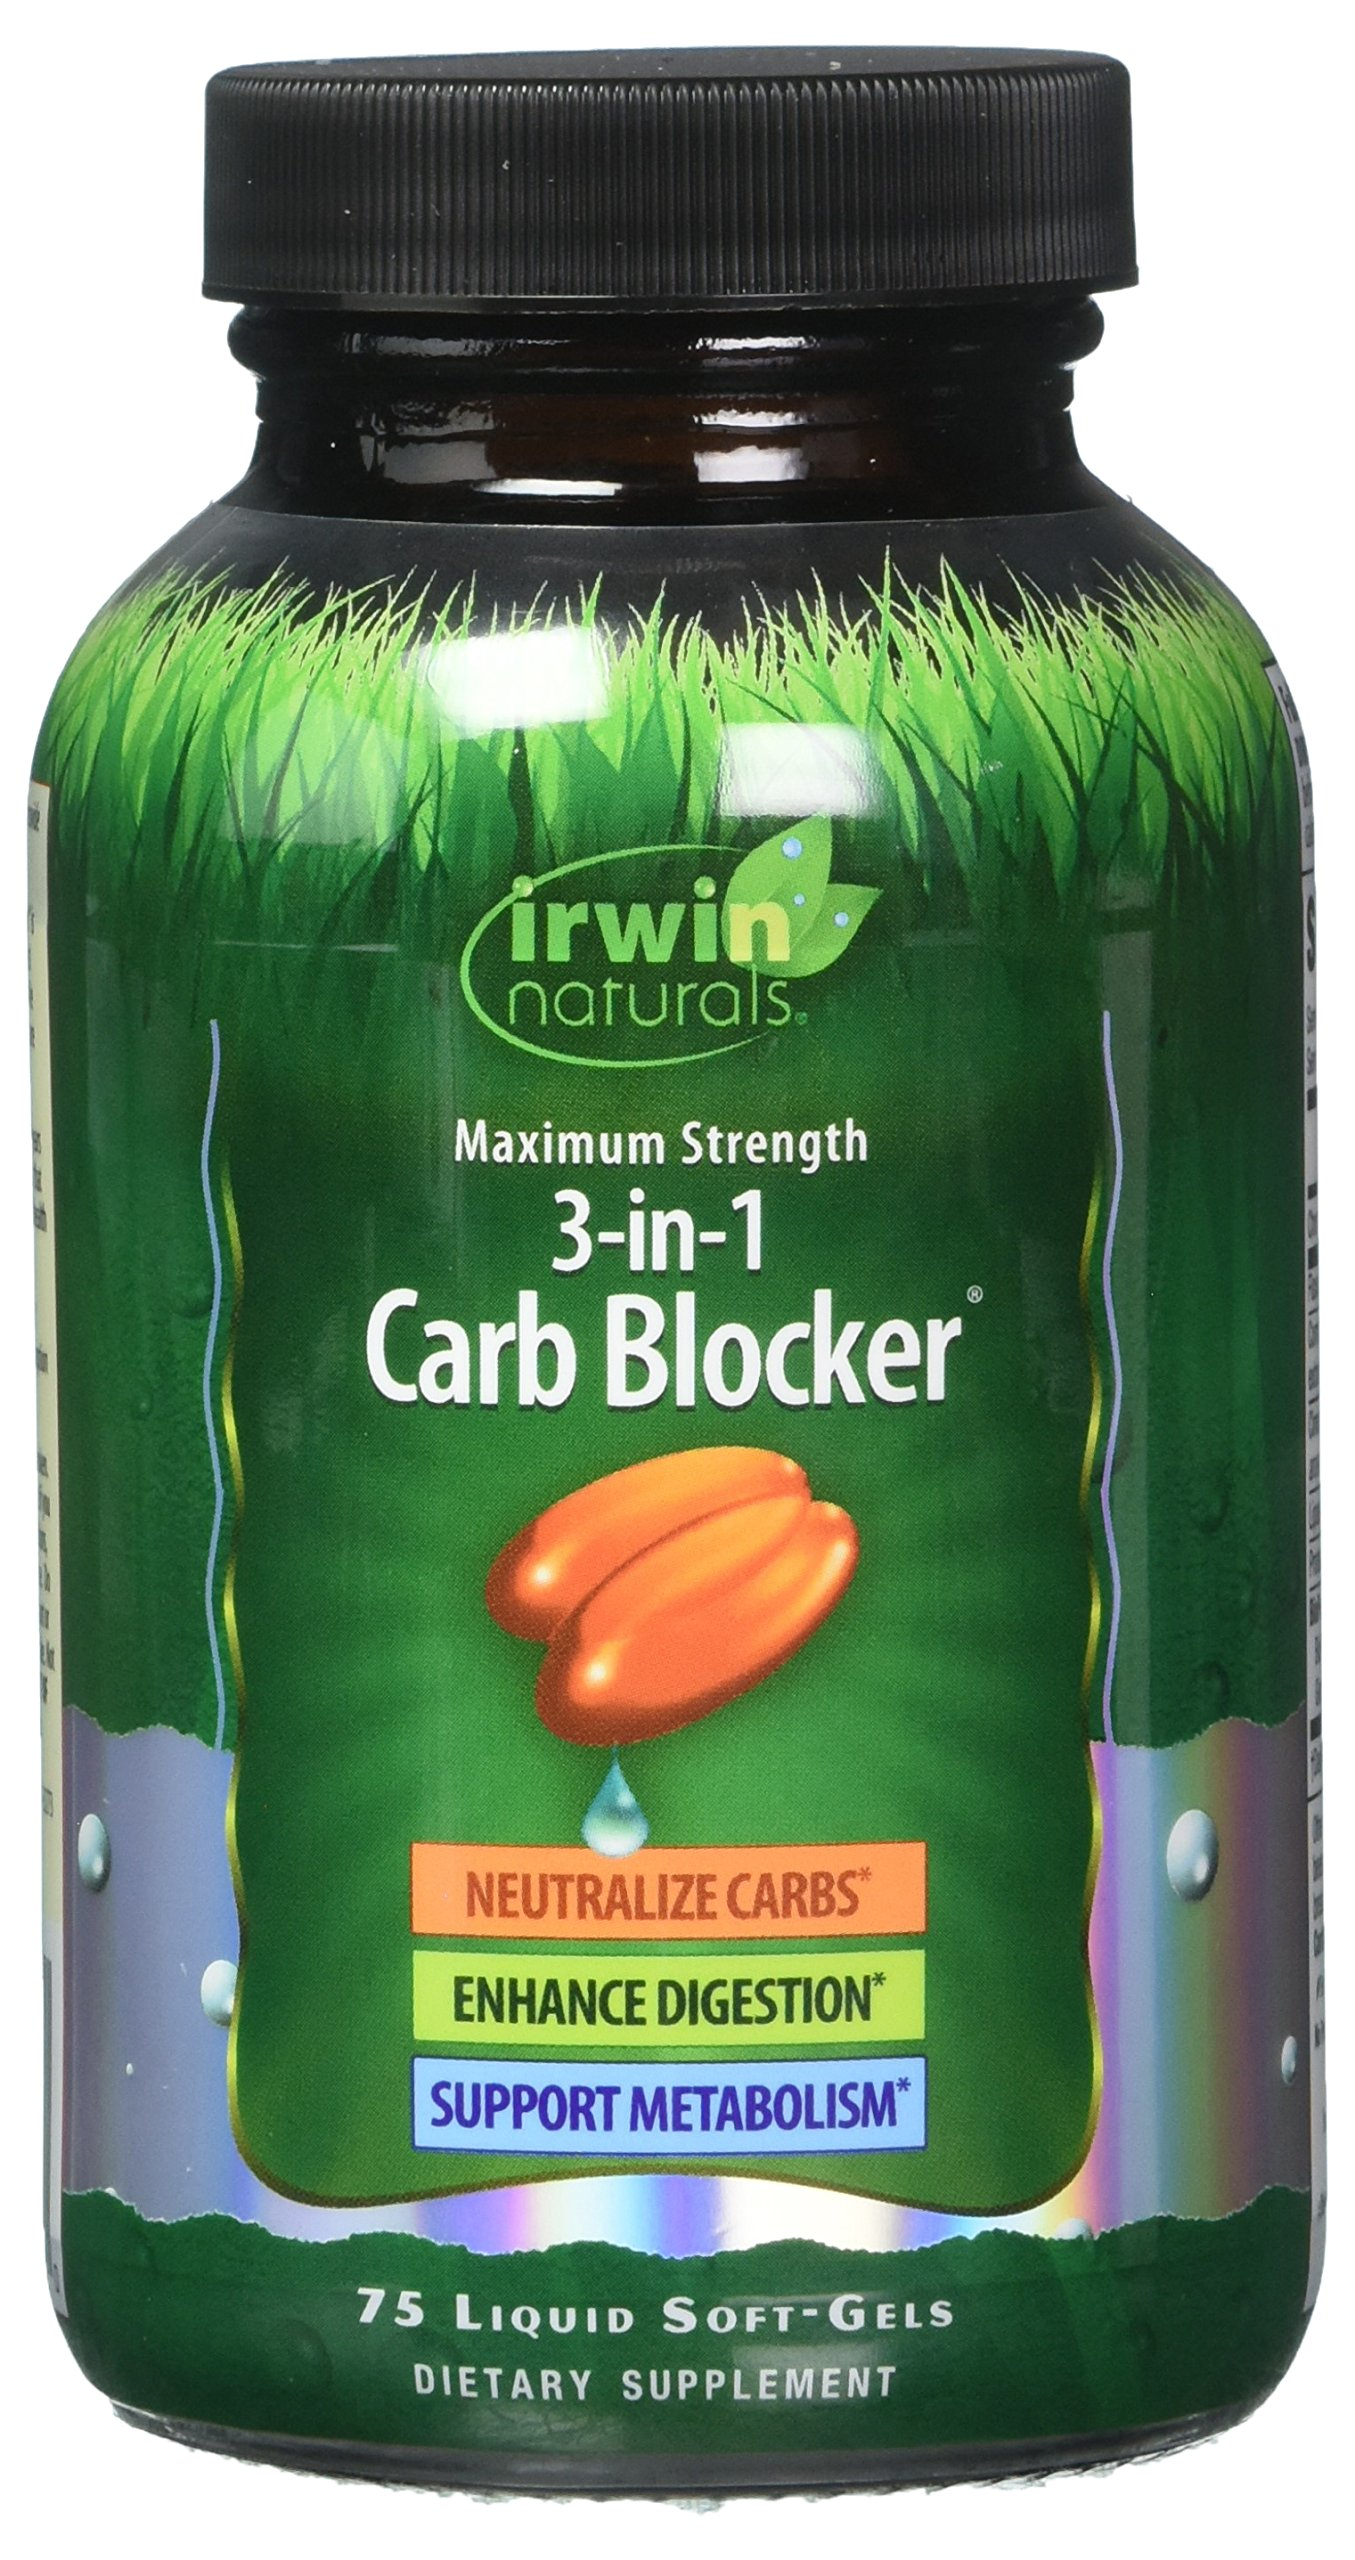 Maximum Strength 3-in-1 Carb Blocker by Irwin Naturals, Neutralize Carbohydrates and Support Metabolism, 75 Liquid Softgels, 2 Pack